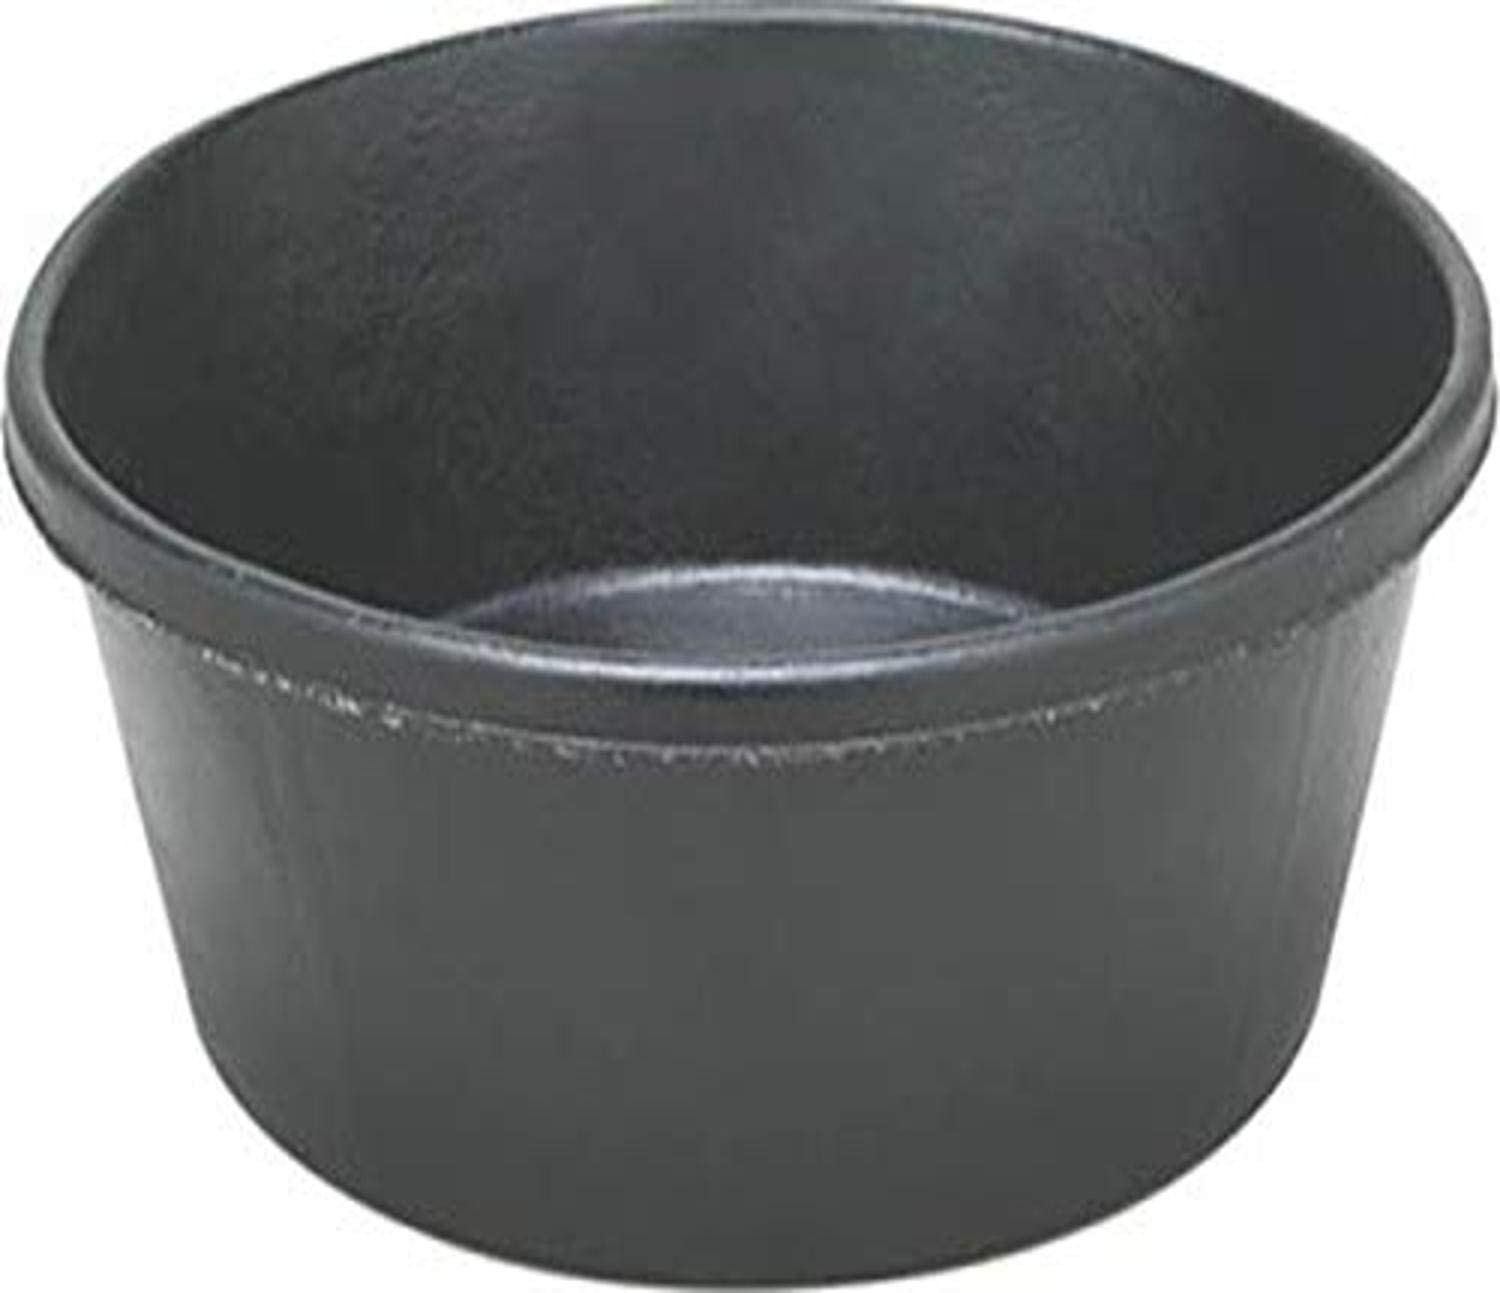 Fortex Feeder Pan for Dogs/Cats and Small Animals, 2-Quart